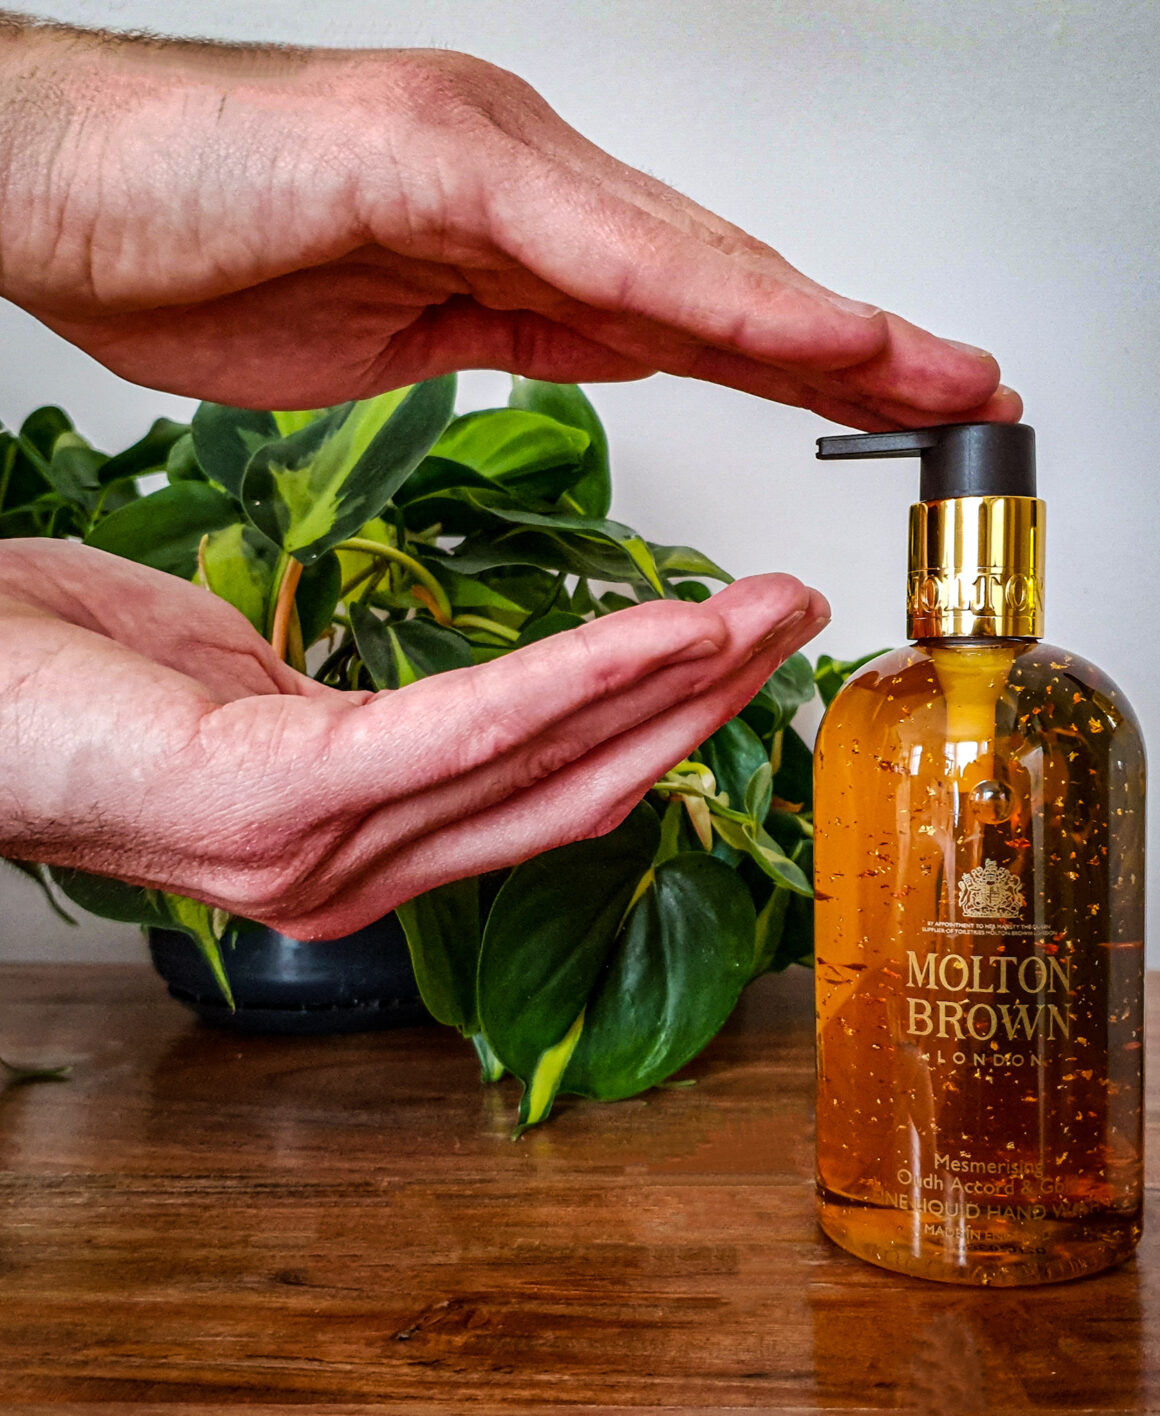 At Home with Molton Brown Tobacco Absolute hand soap